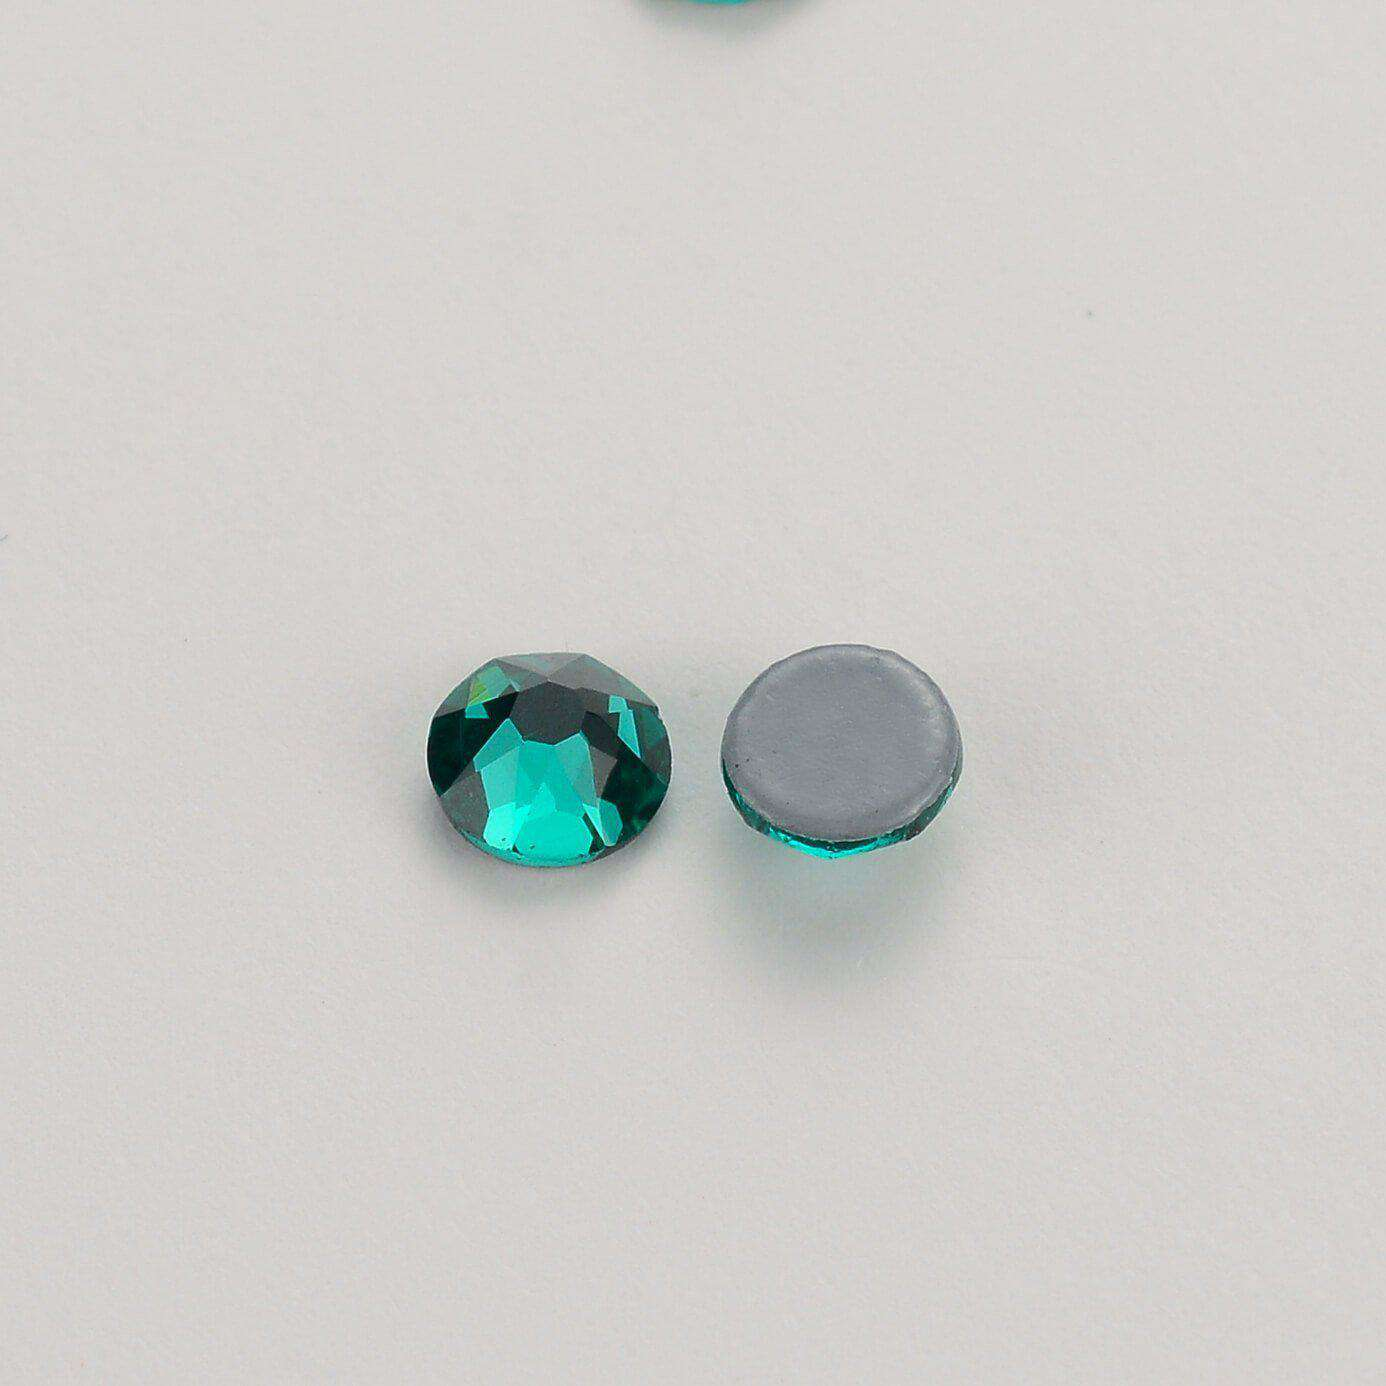 Blue Zircon HotFix Rhinestones 8 Big 8 Small Cut Facets - WholesaleRhinestone